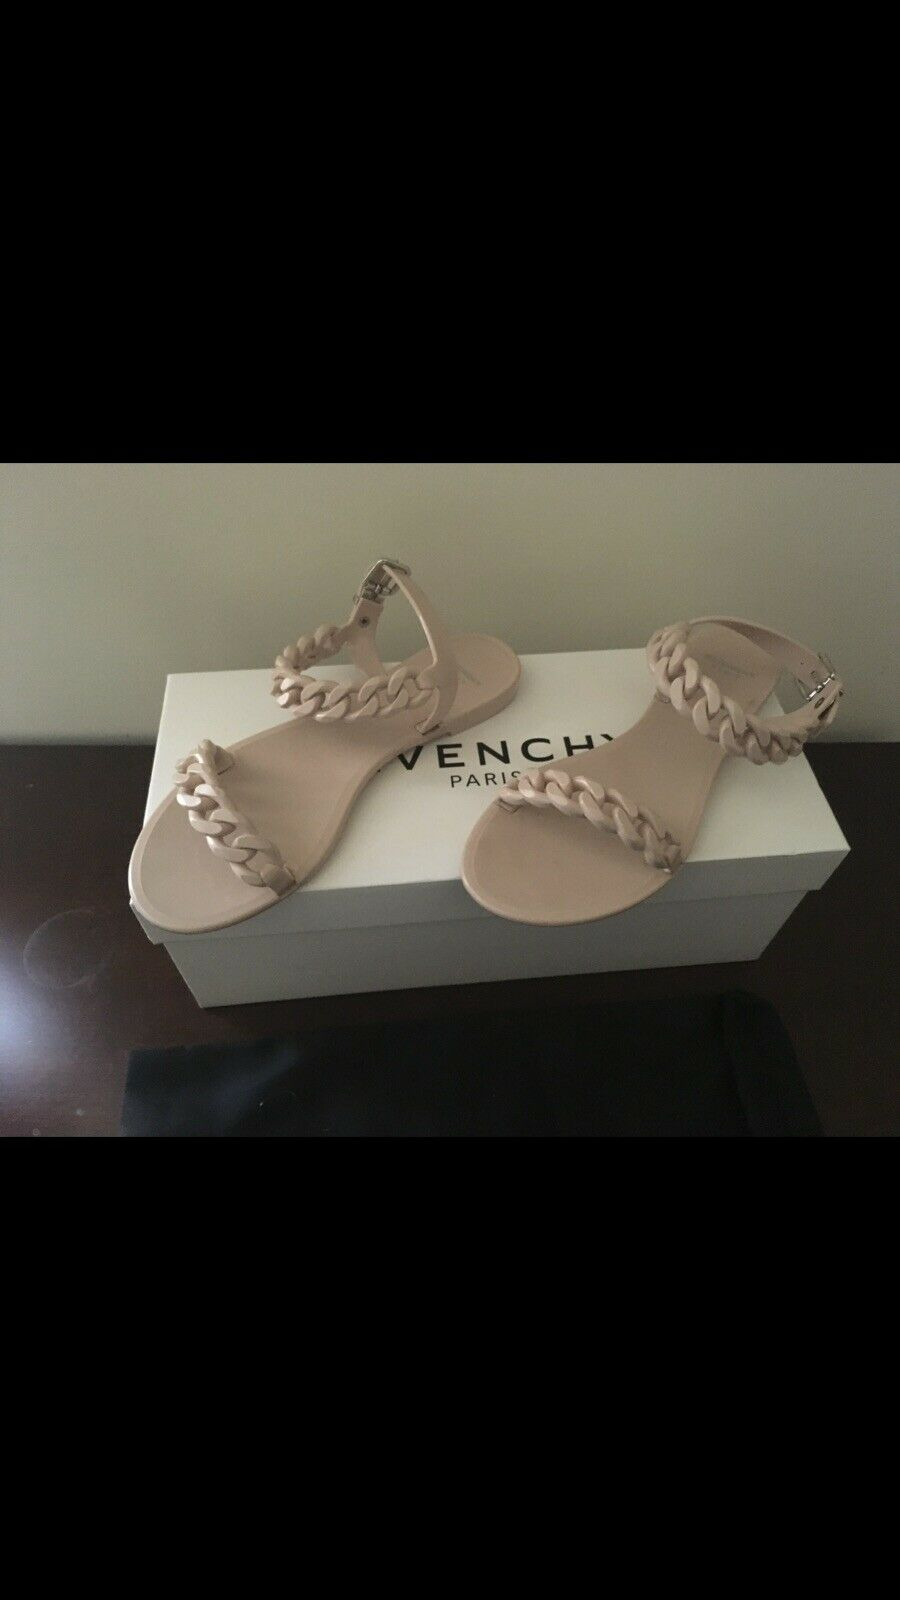 Givenchy Jelly Rubber Chain Sandals 40. Nude